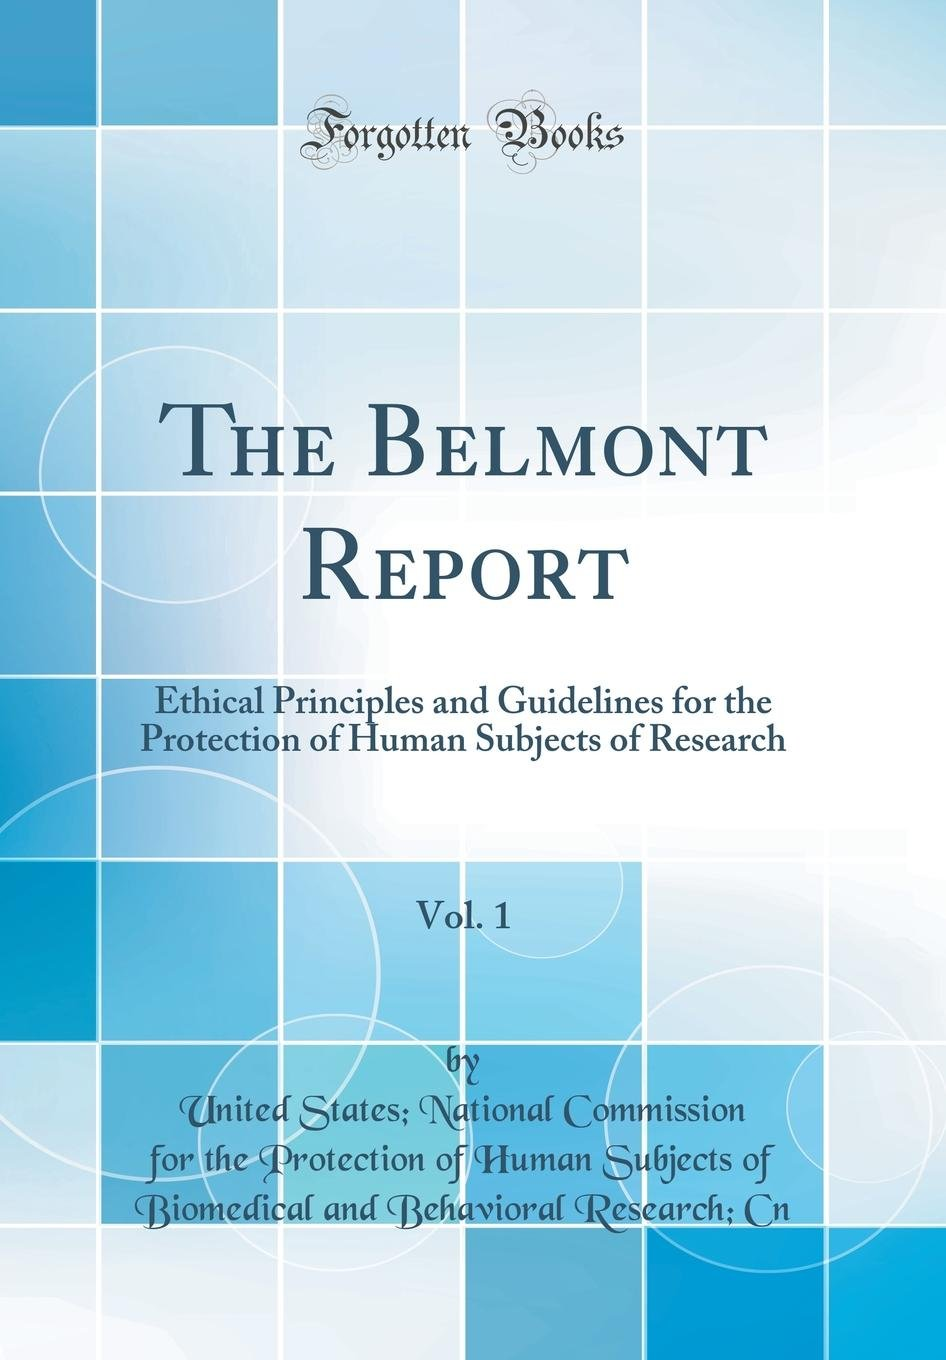 The Belmont Report, Vol. 1: Ethical Principles and Guidelines for the Protection of Human Subjects of Research (Classic Reprint) pdf